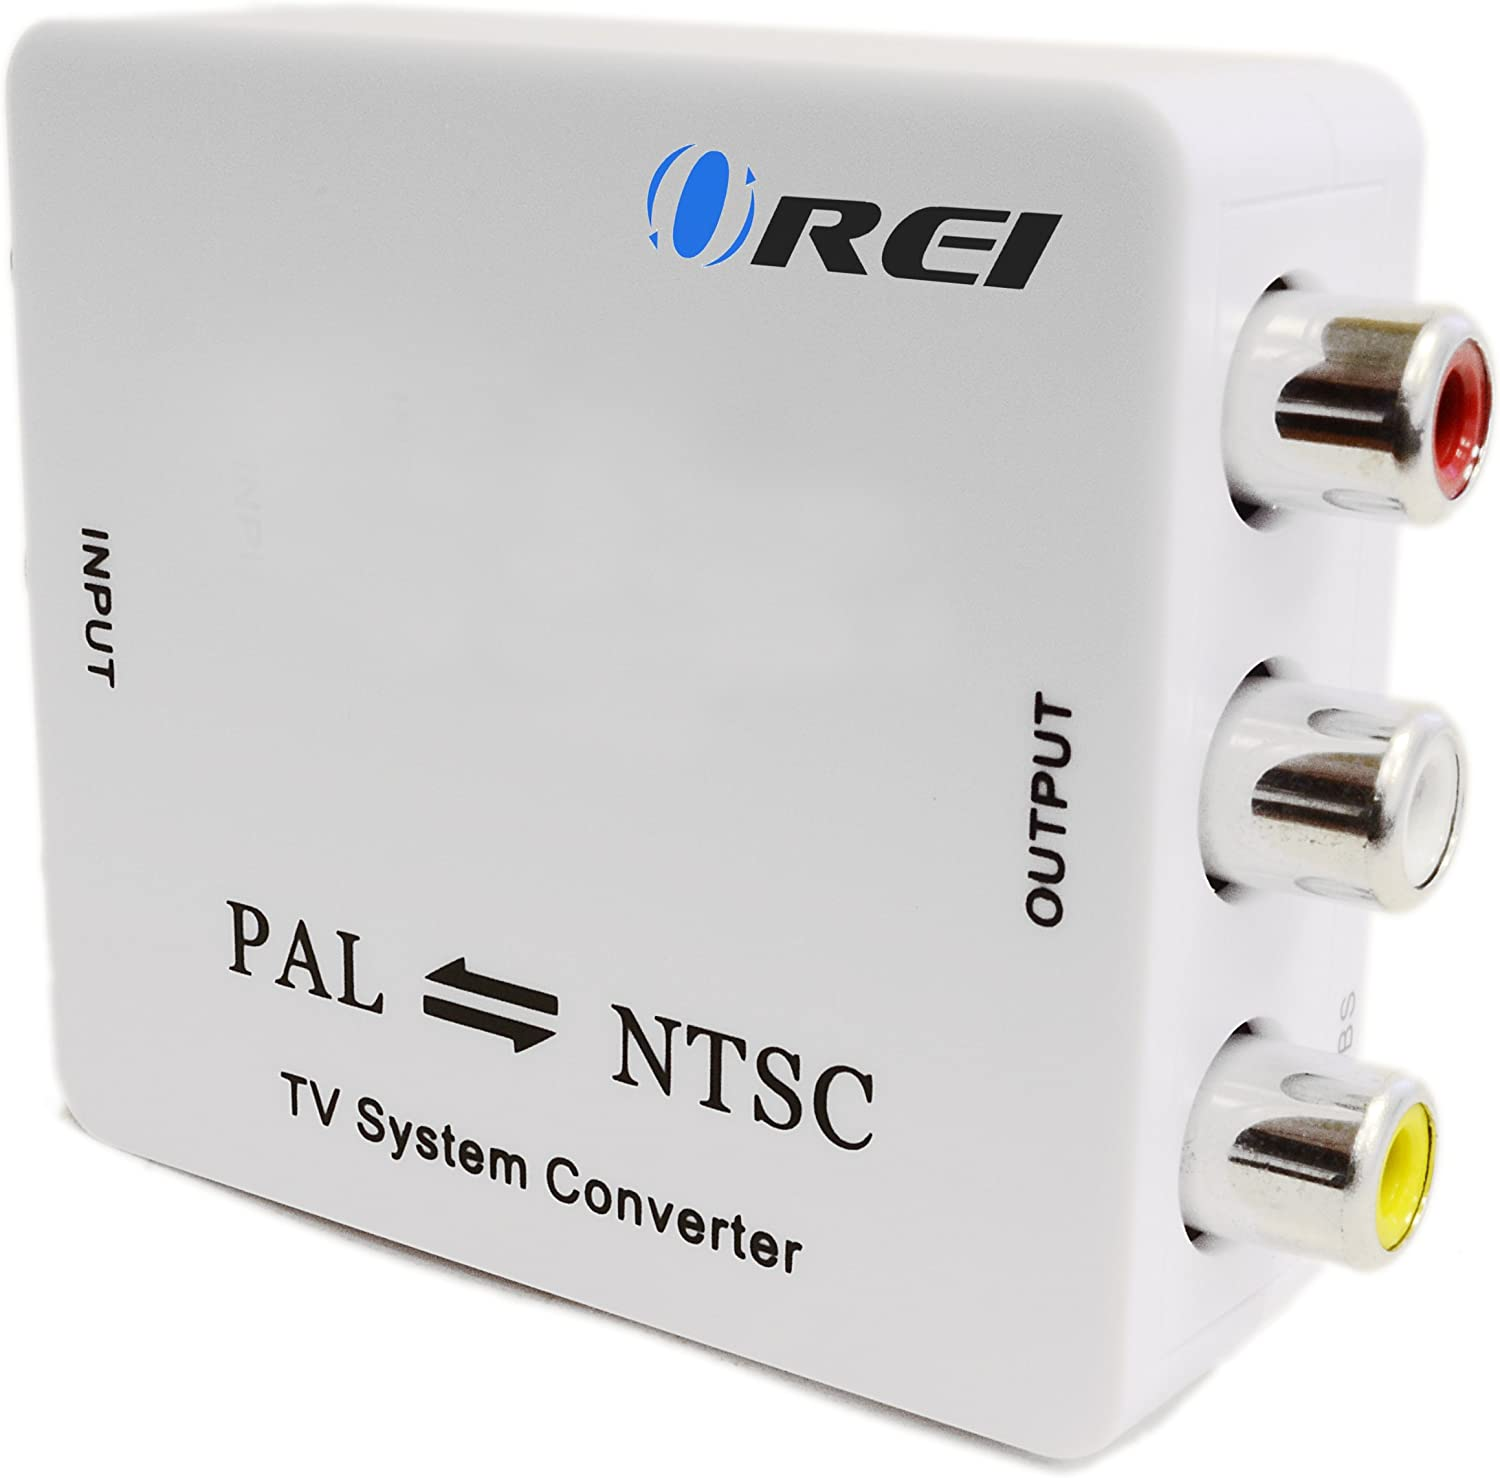 OREI MX-100 Compact Ranking TOP6 Ranking integrated 1st place PAL NTSC Converter Video Composite Connectio